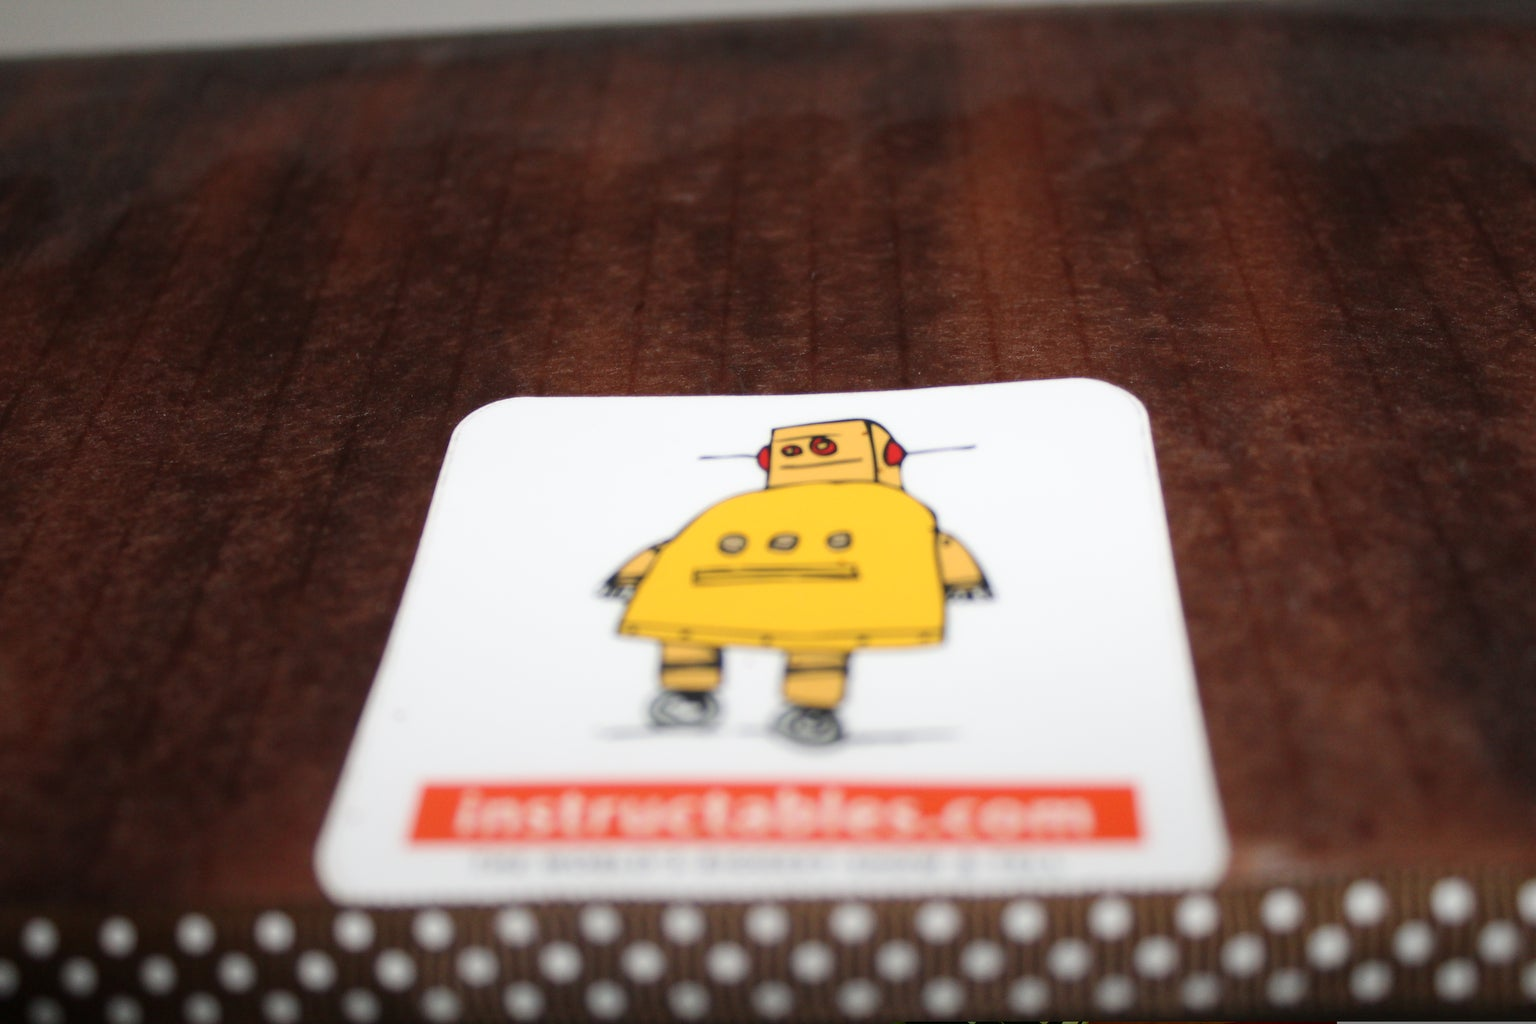 Put the Instructable Patch